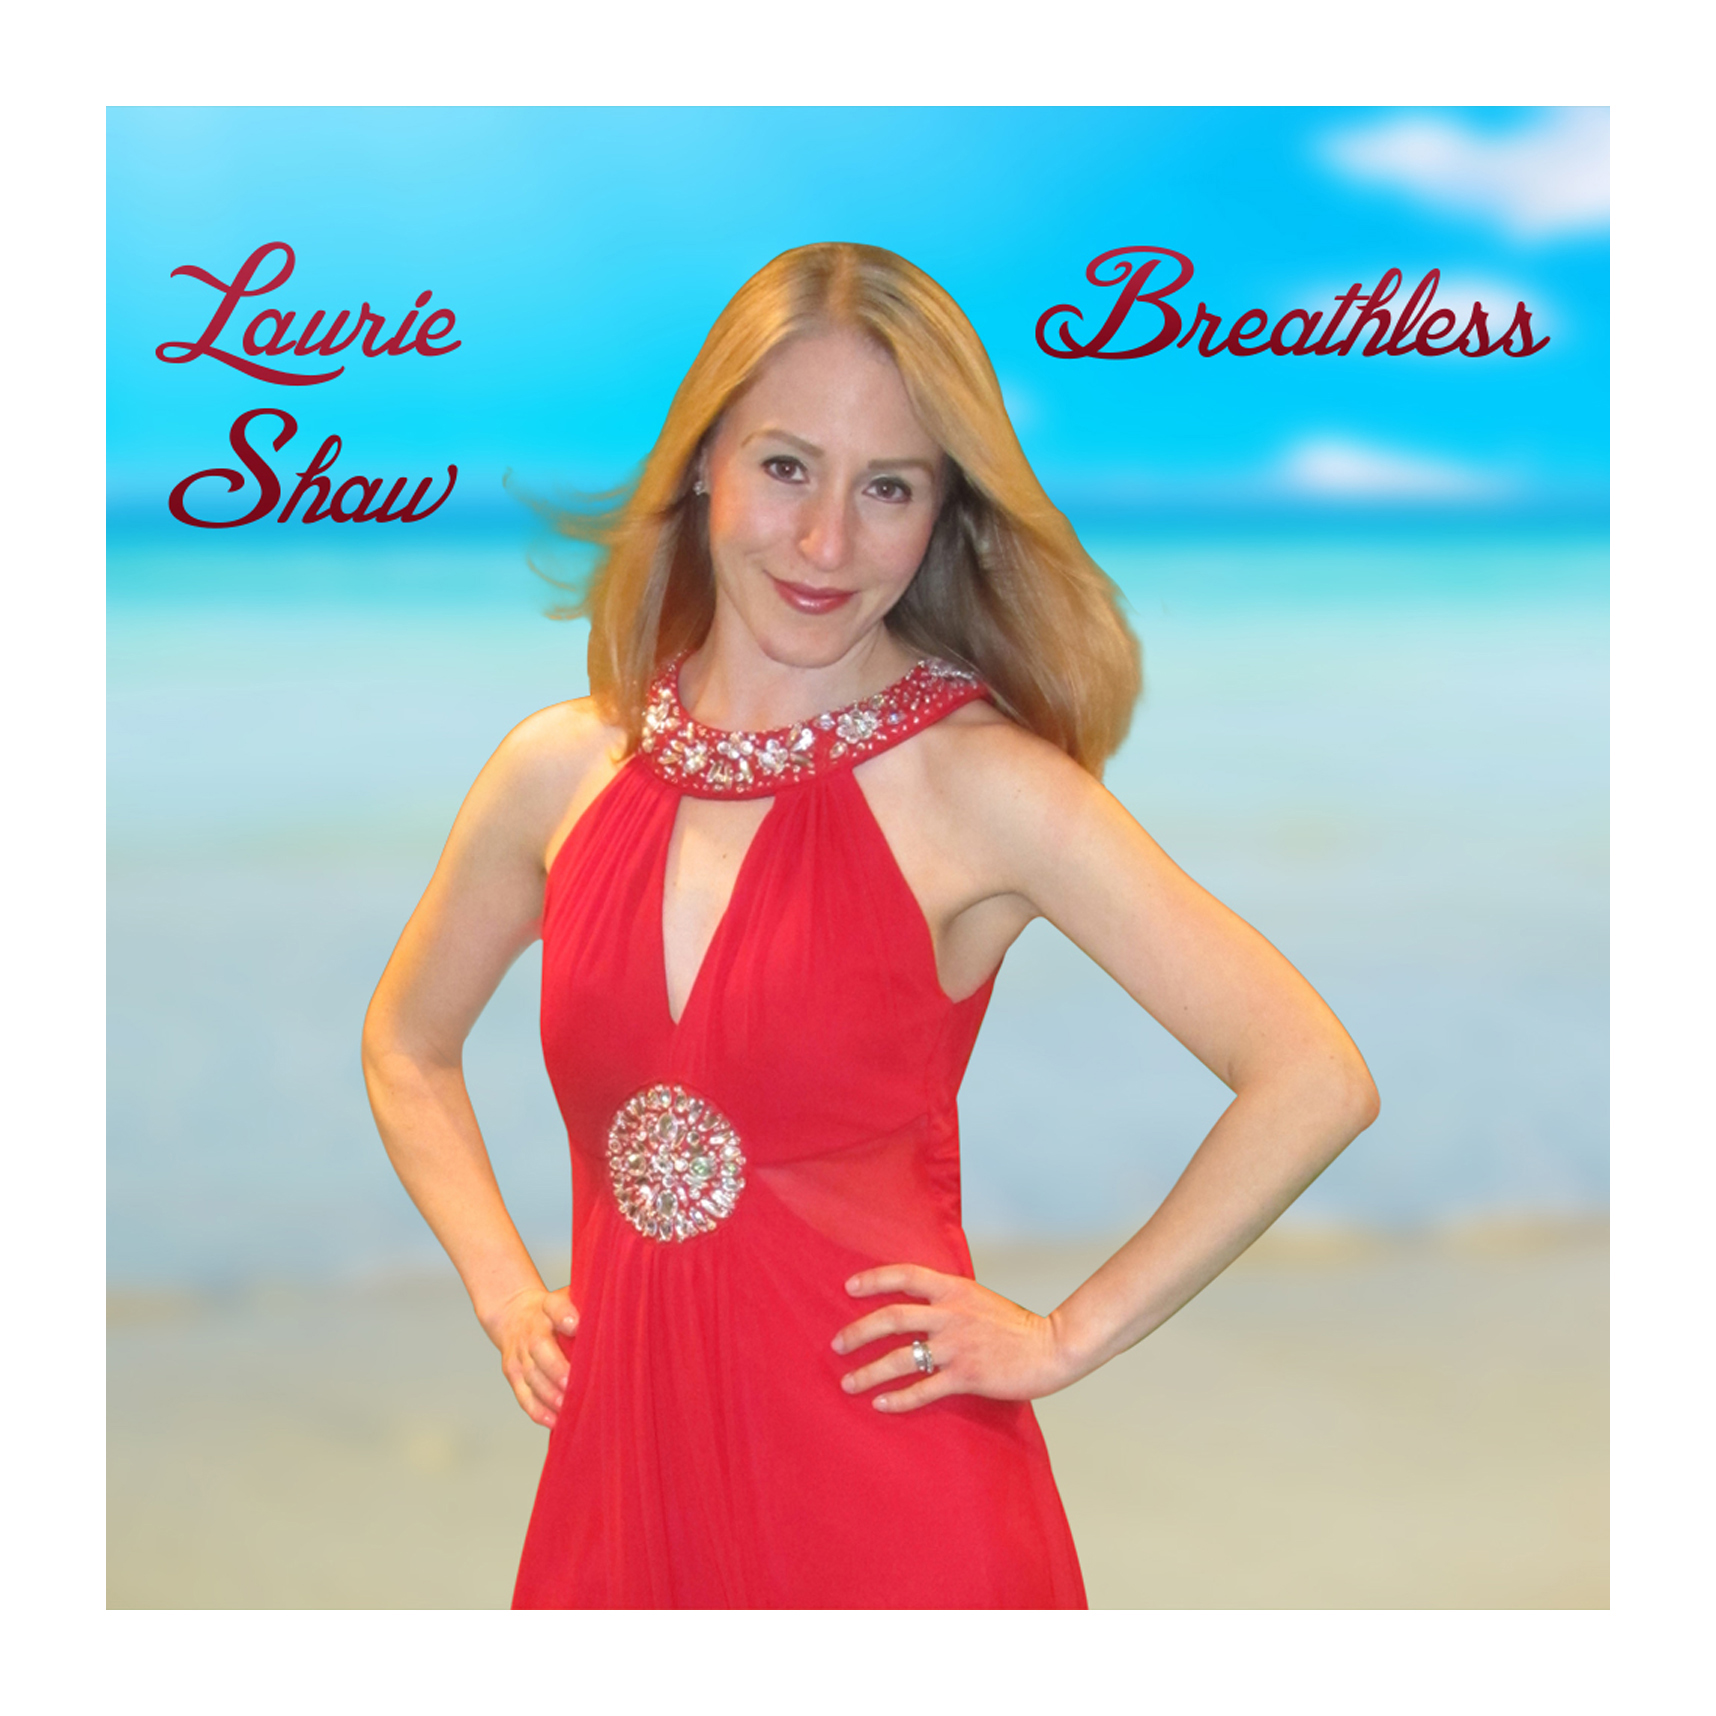 Laurie Shaw Breathless - PromoBuzz Photo-1400 x 1400